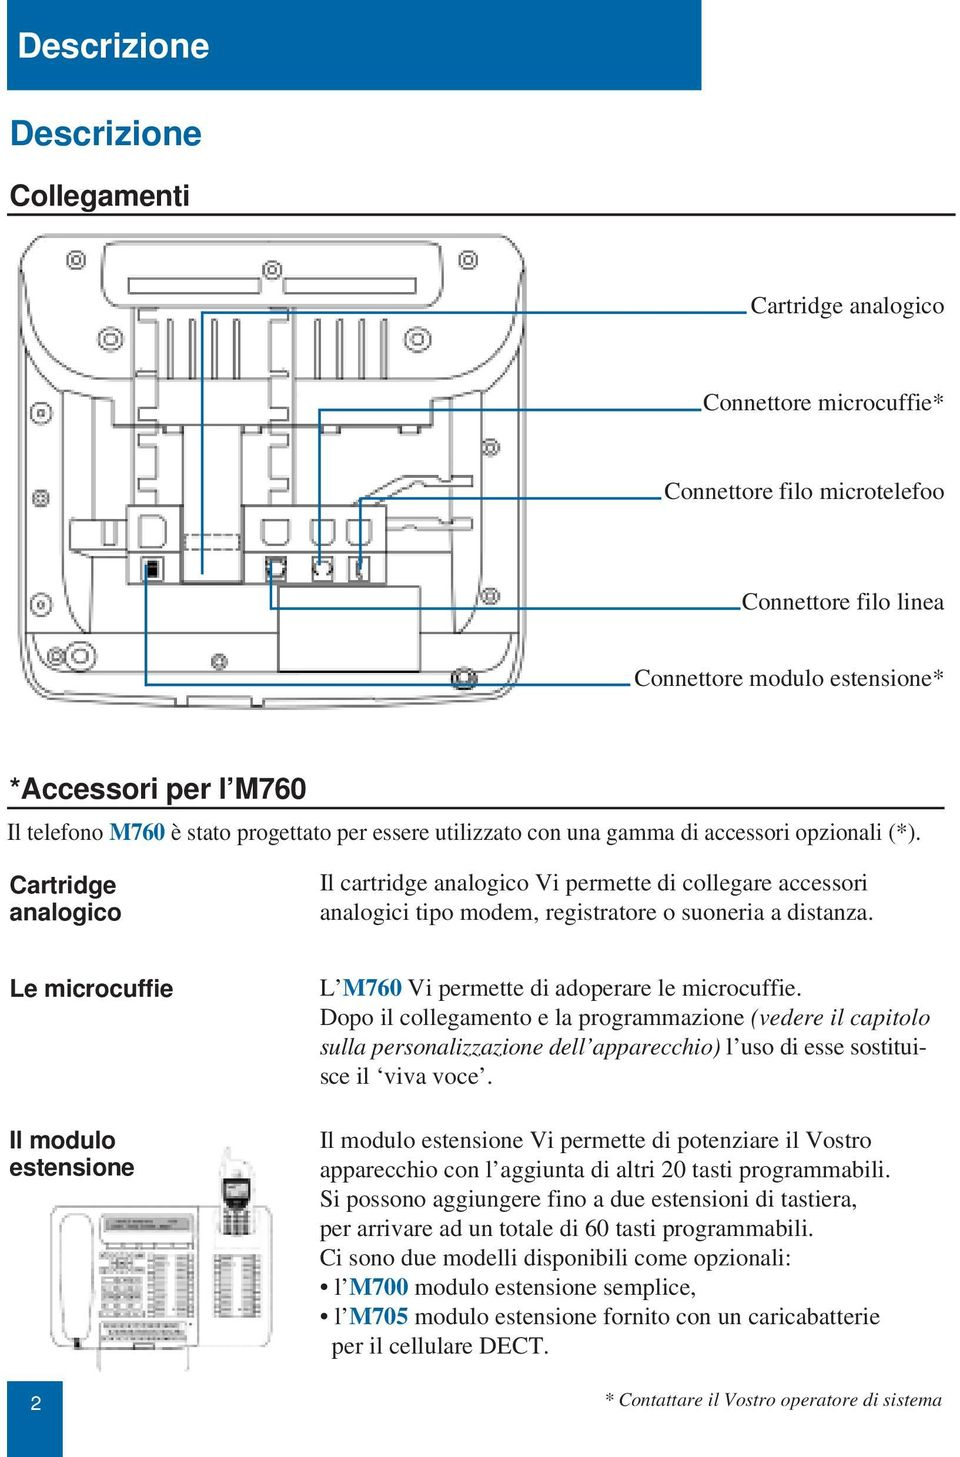 Cartridge analogico Il cartridge analogico Vi permette di collegare accessori analogici tipo modem, registratore o suoneria a distanza.